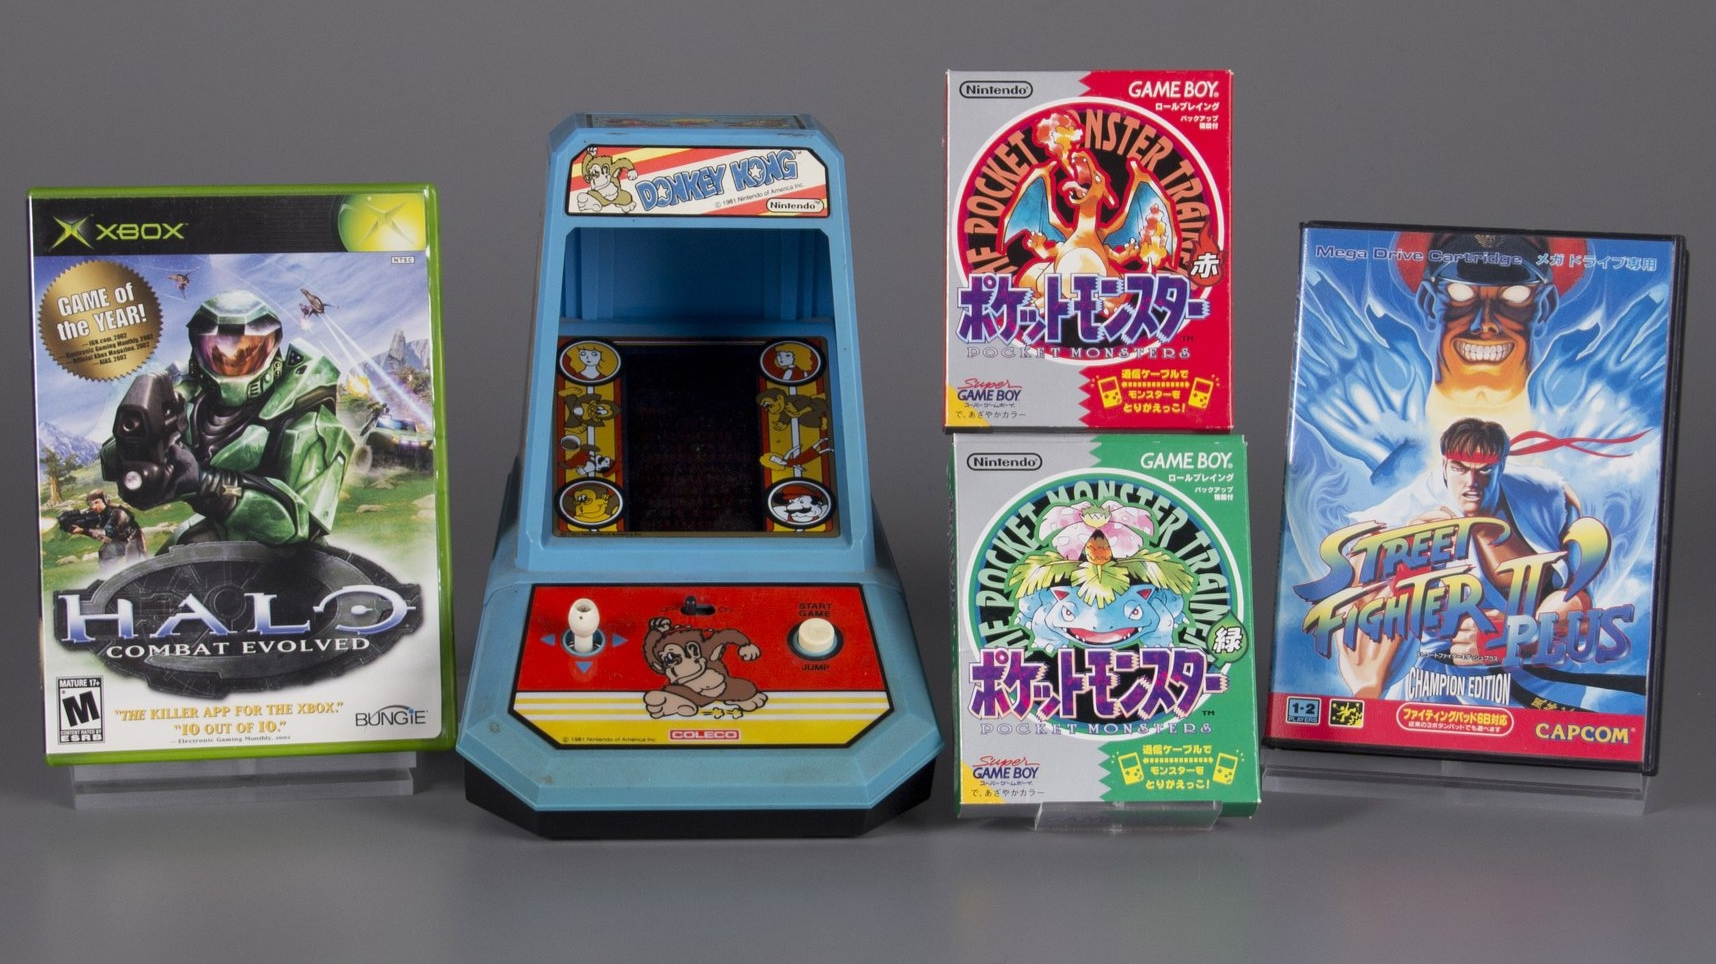 Four games inducted into the World Video Game Hall of Fame